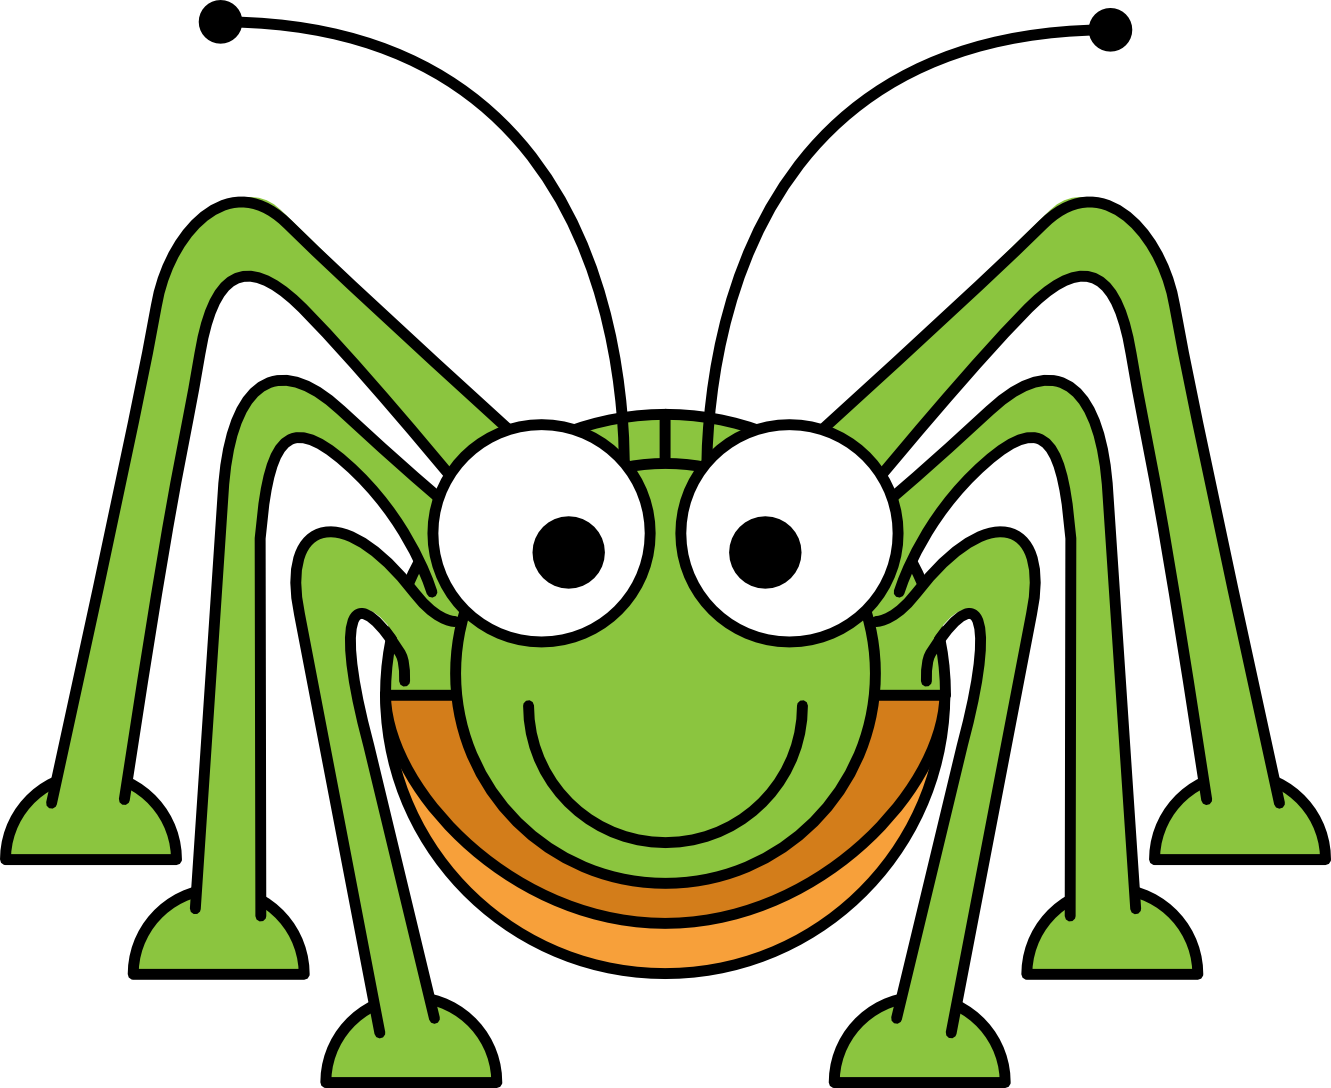 Free Grasshopper Cartoon Images, Download Free Clip Art.